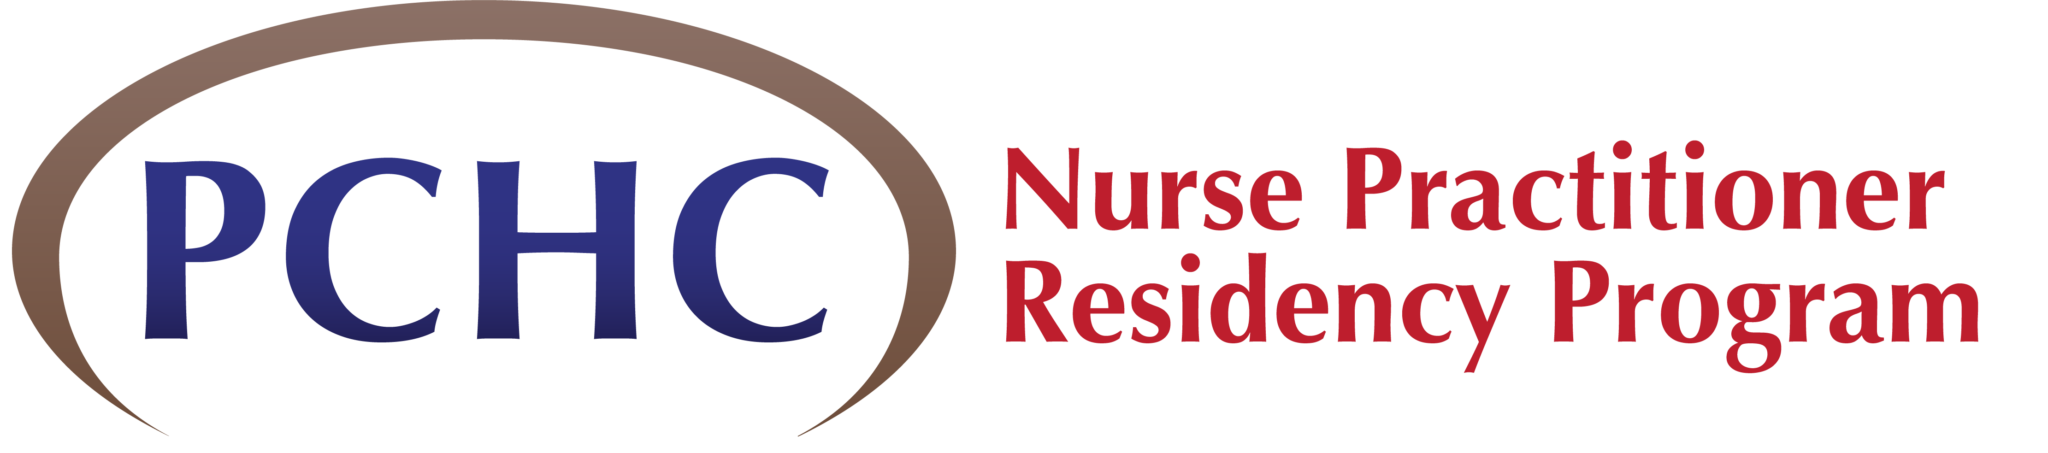 PCHC Nurse Practitioner Residency Program